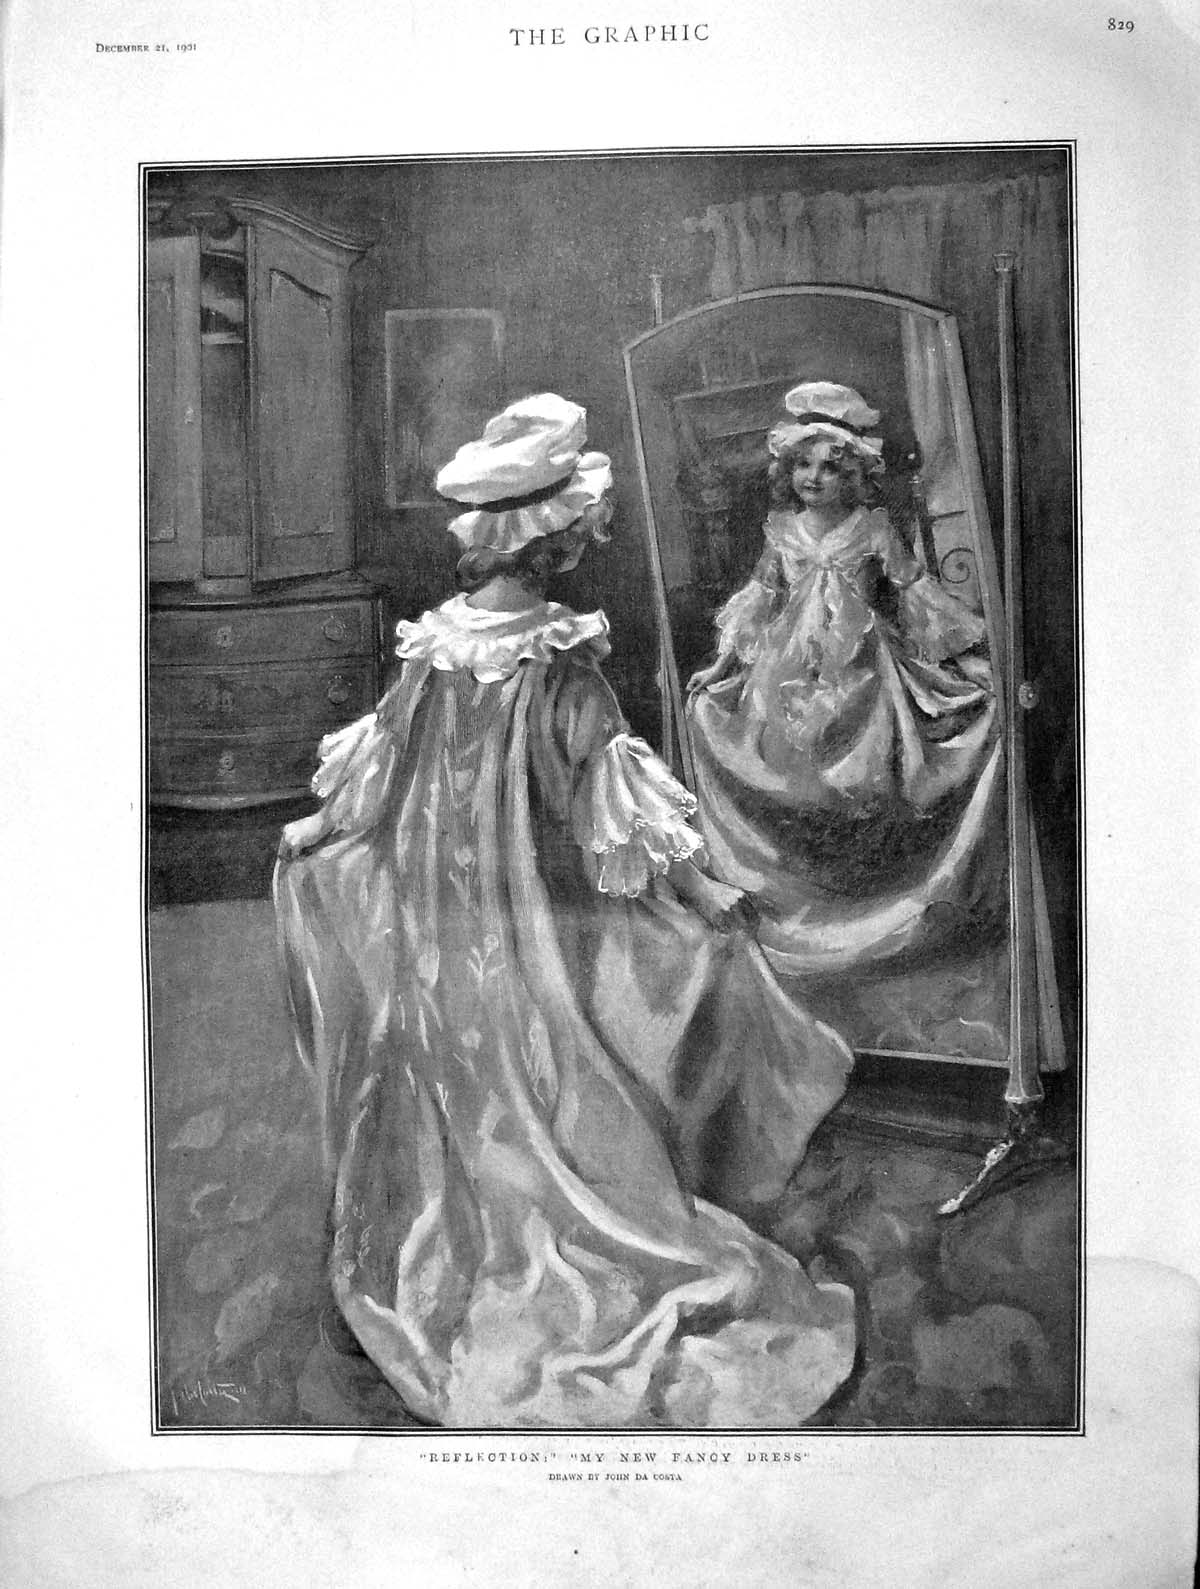 Old-Antique-Print-1901-Girl-Fancy-Dress-Oxford-Rugby-Ship-Satellite-Tin-20th